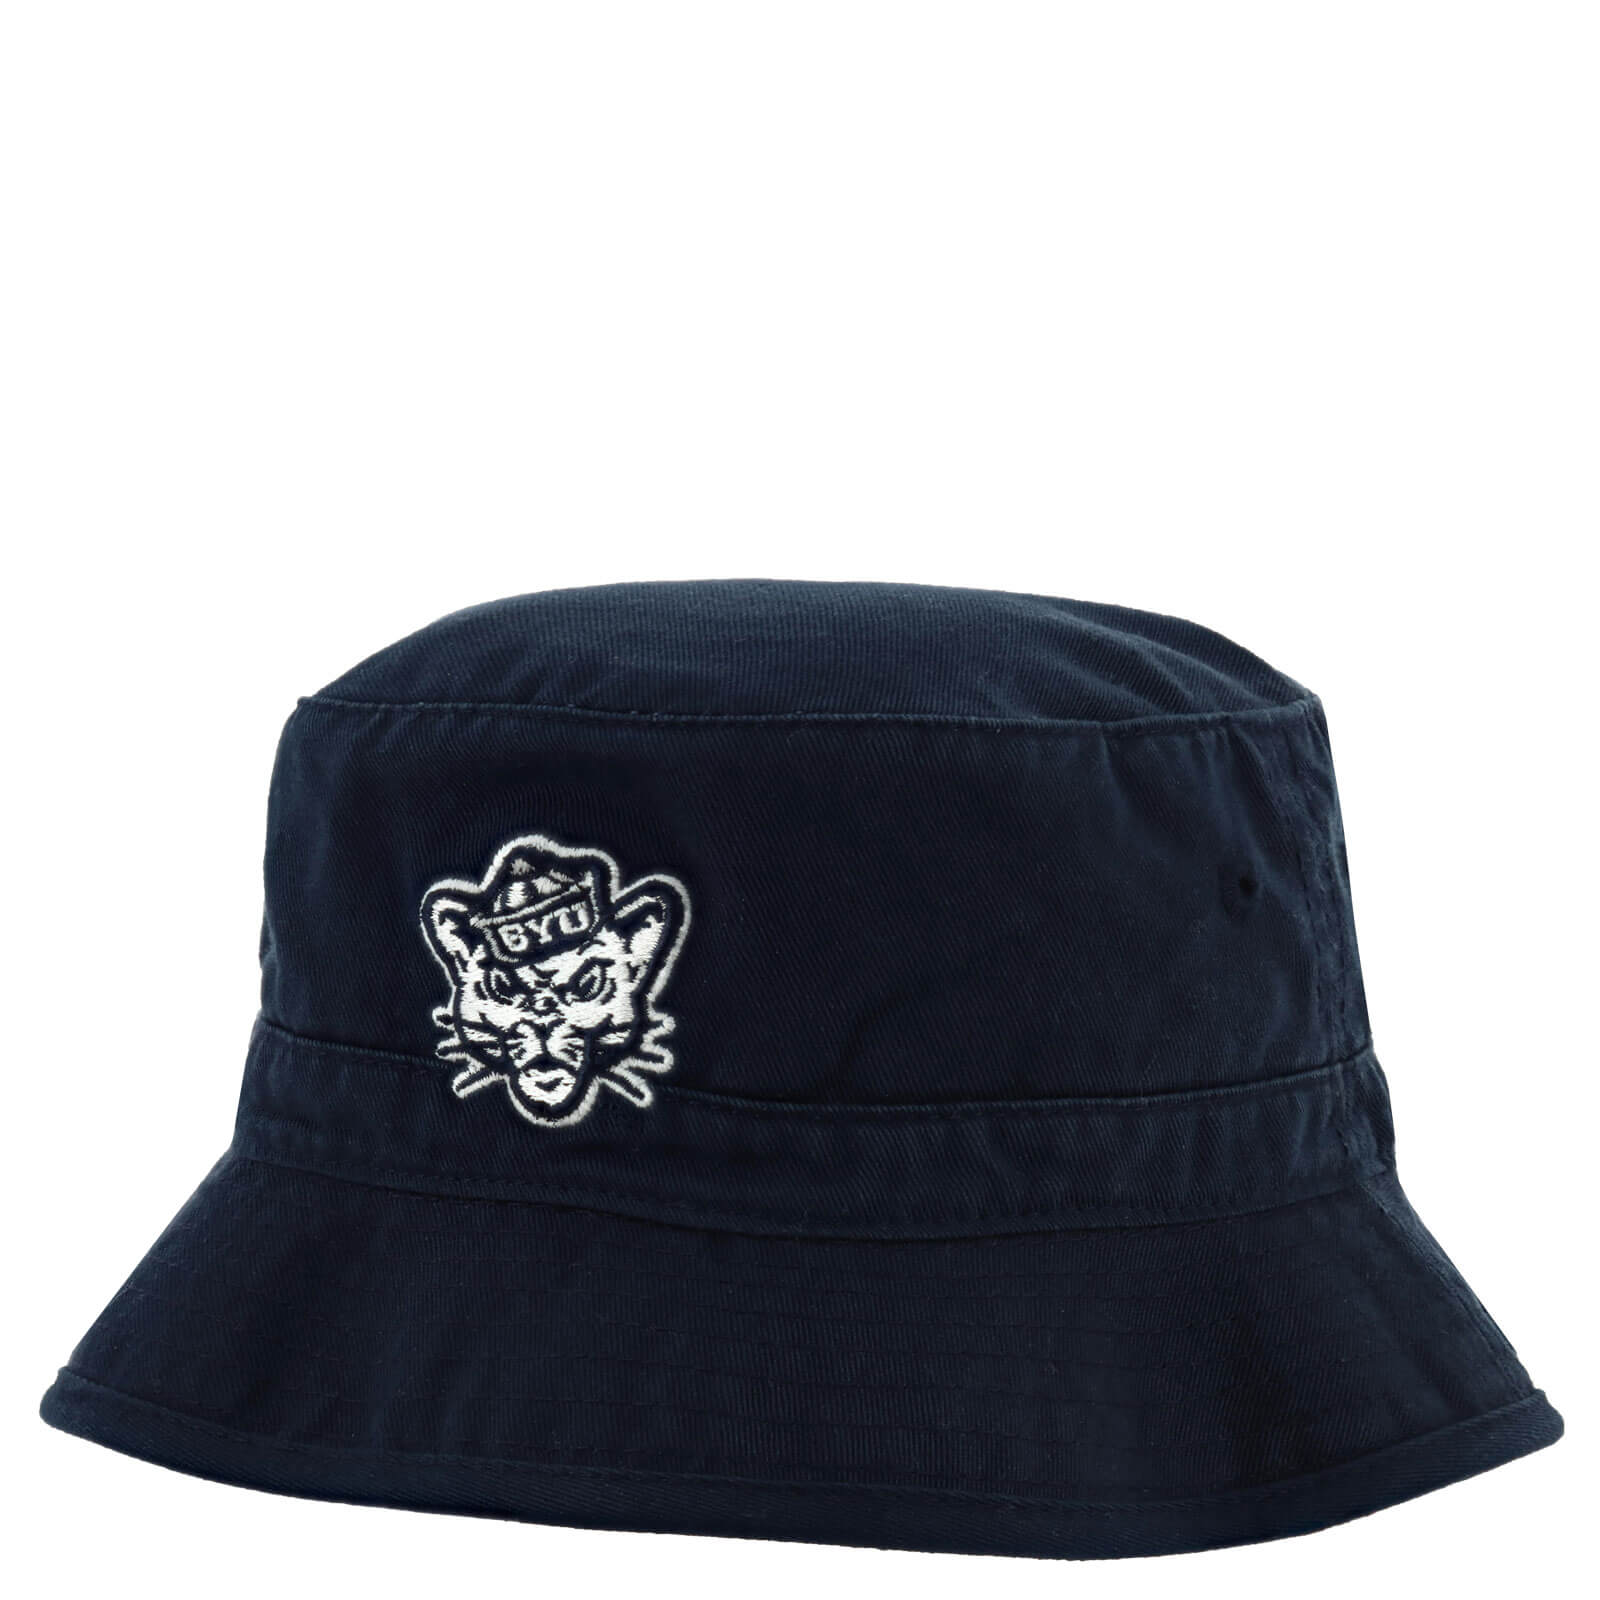 detailed look 7bd88 d42f2 ... germany where to buy youth sailor hat cougar byu bucket hat top of the  world 28462